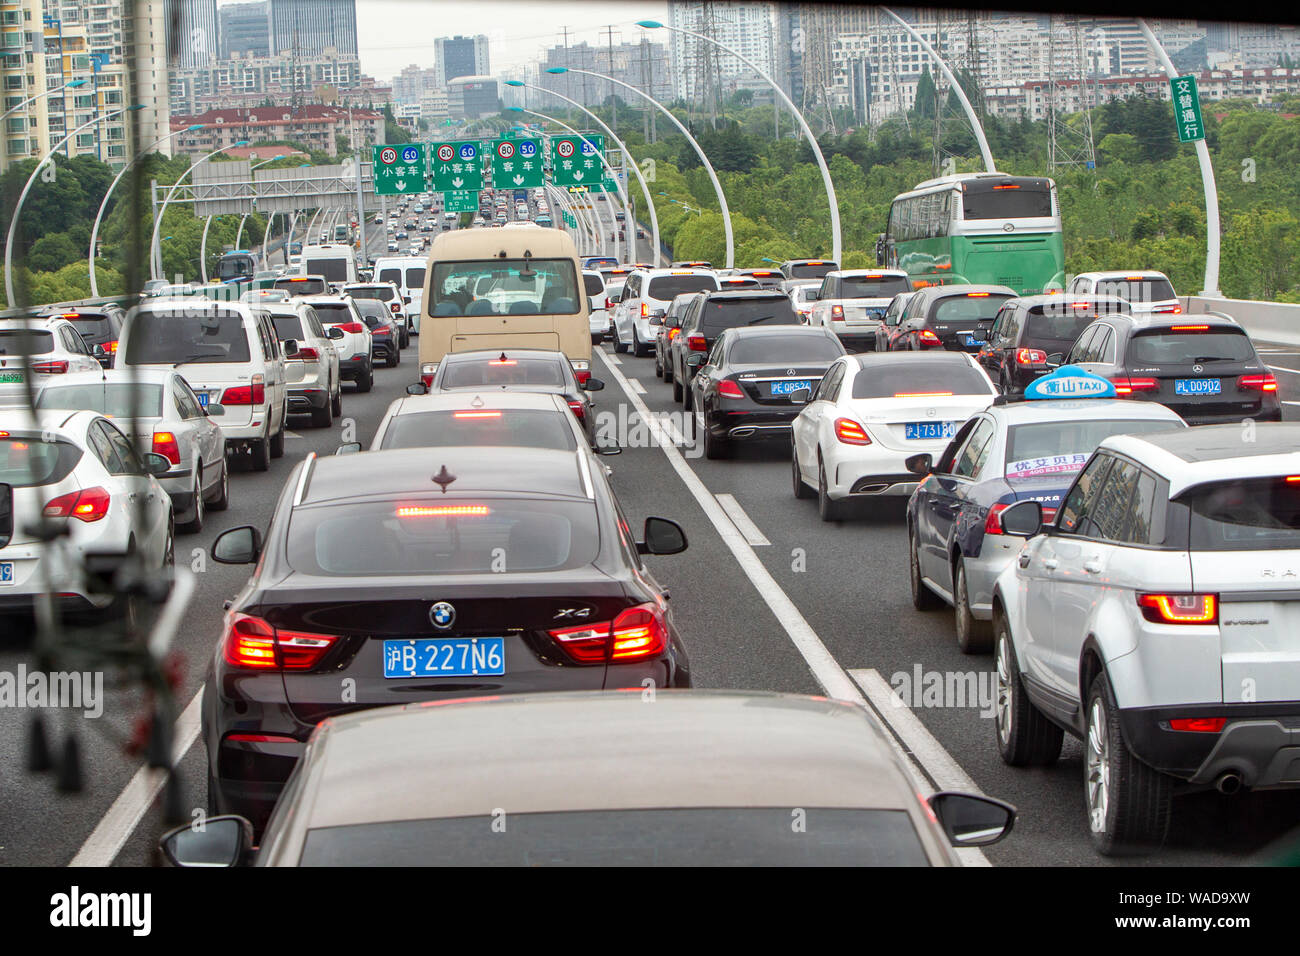 FILE--Cars move slowly on a road in a traffic jam during